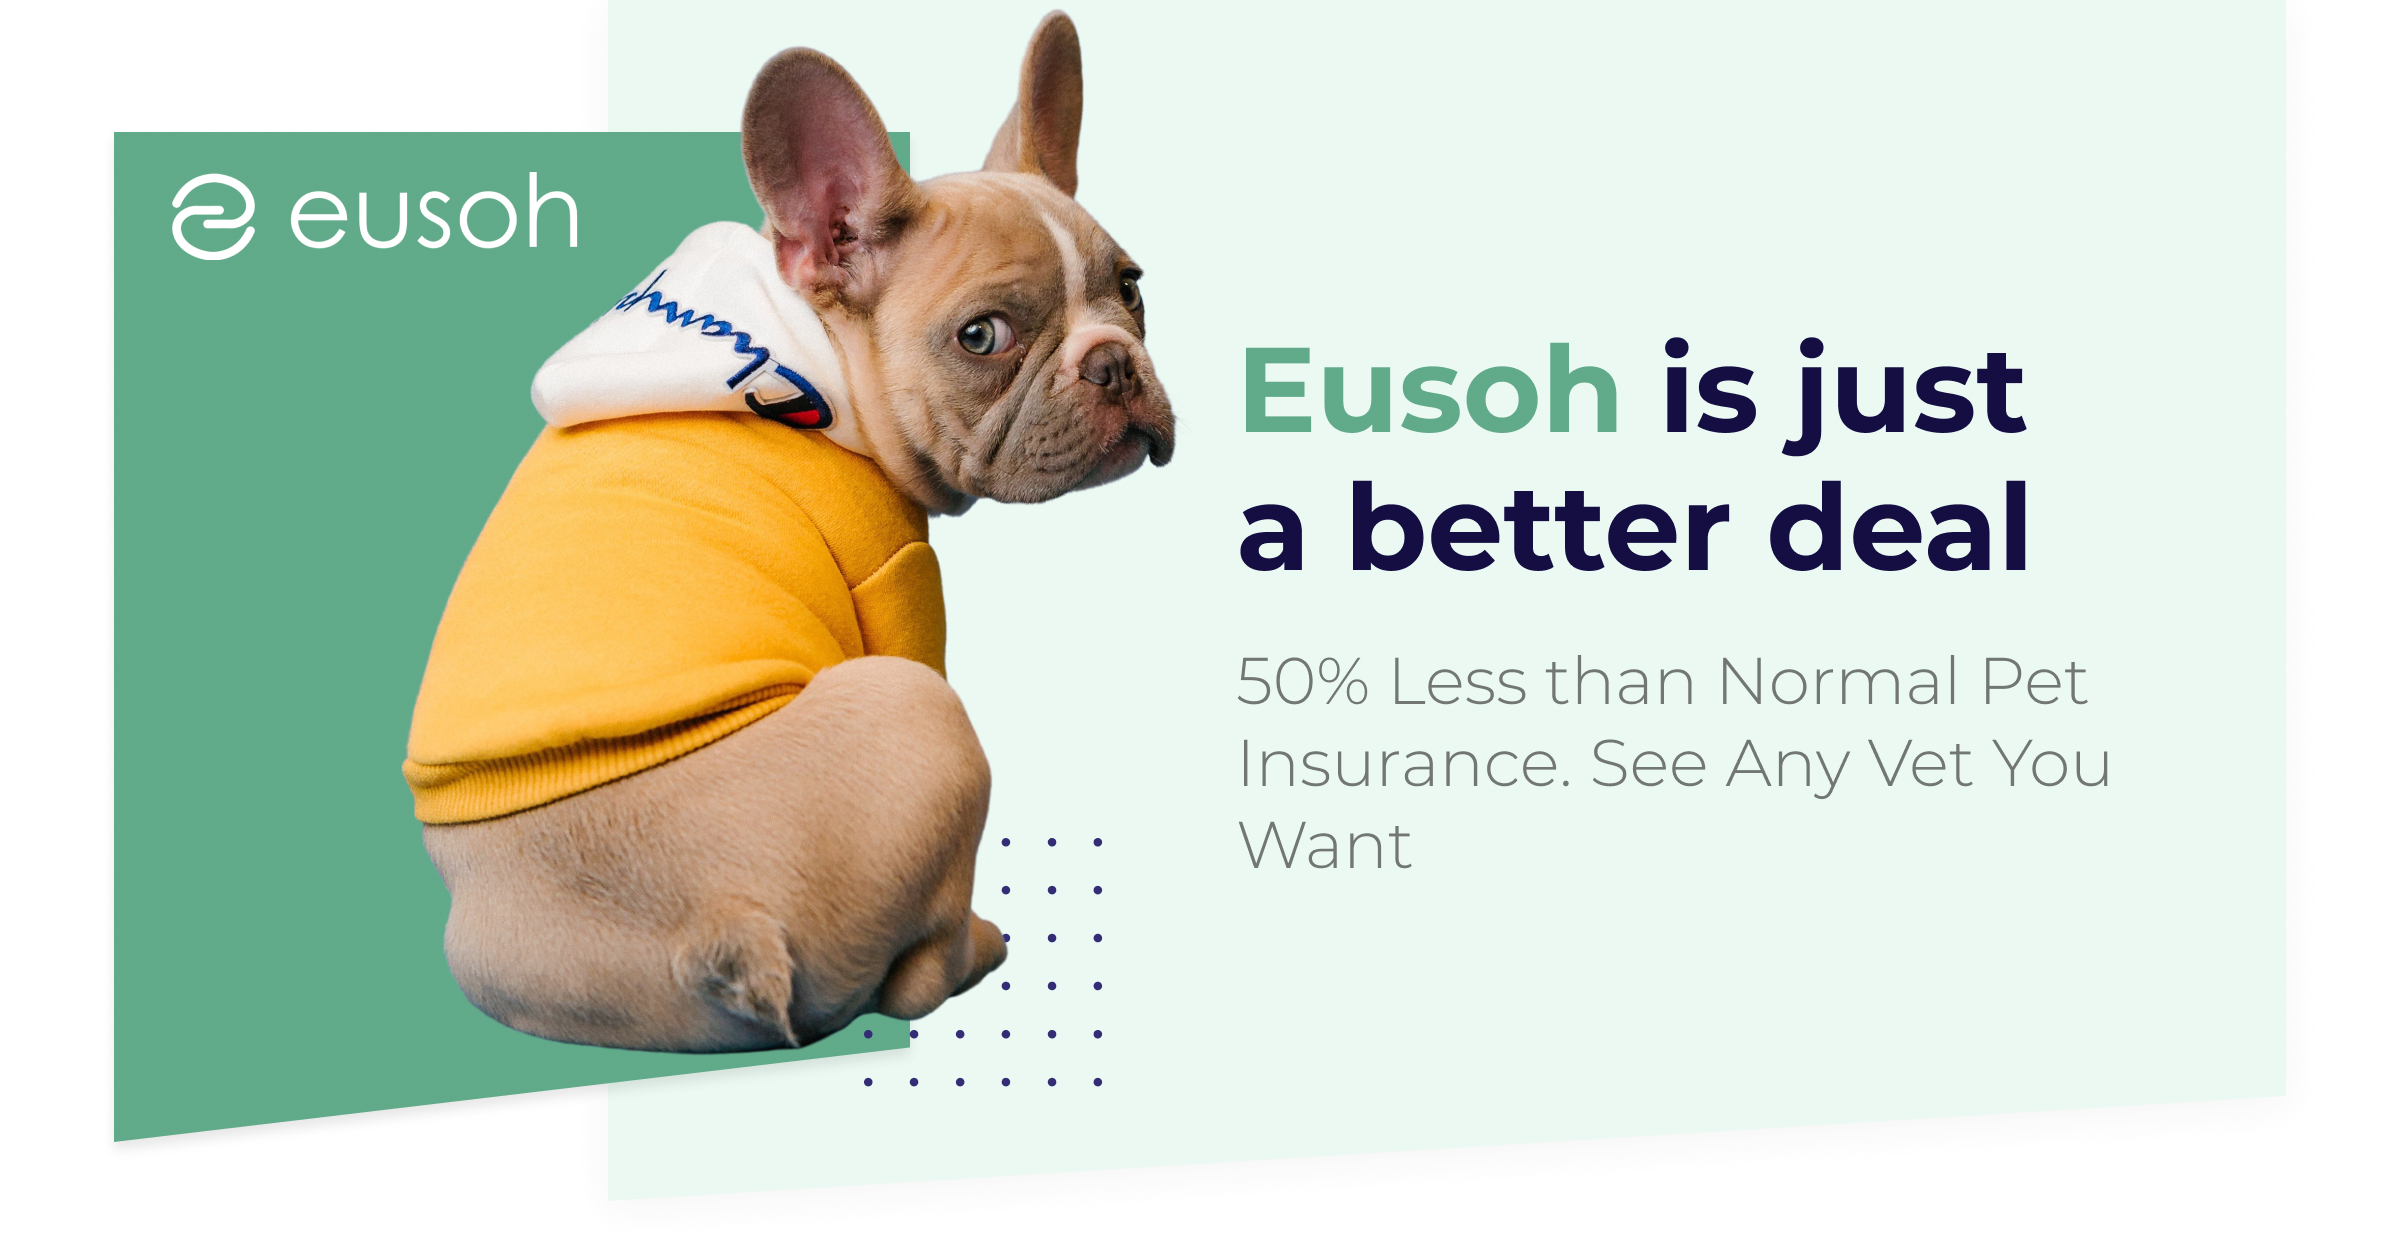 Get $3 Off per Month on Your Eusoh Plan